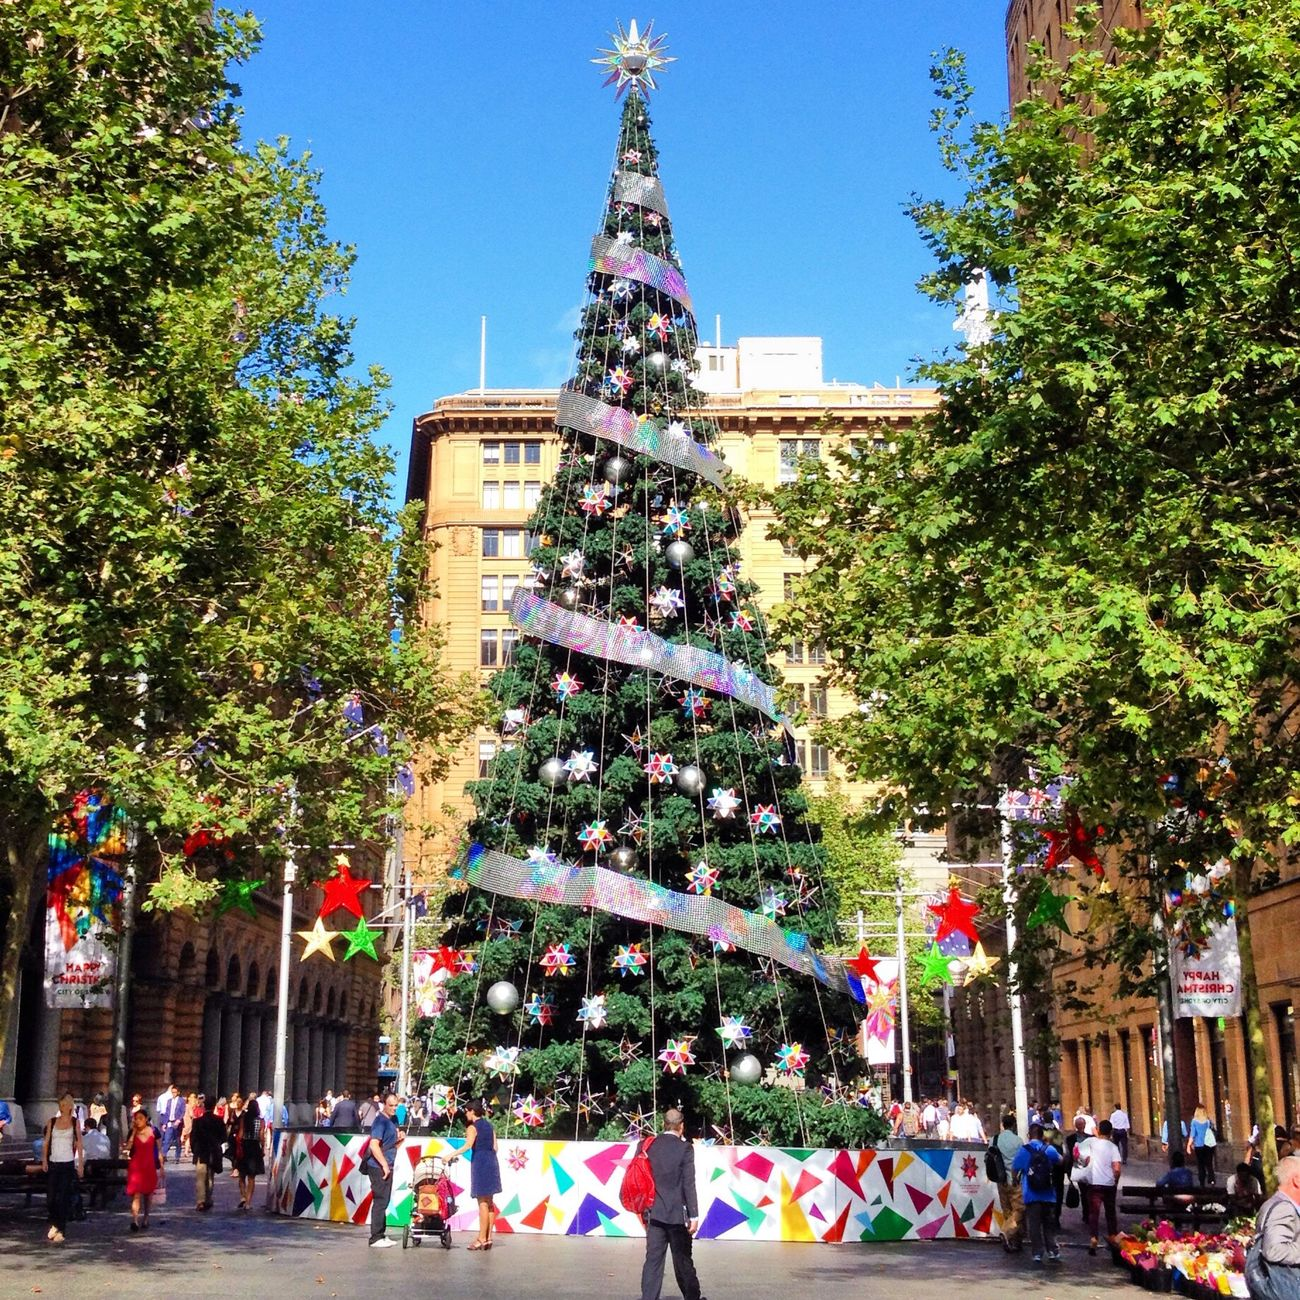 Fmsphotoaday 2013 | 12.17 & 12.18 | Tree & Big | Big tree in Martin Place! | #fmsphotoaday #latergram #nofilter #christmas #tree #sydney #iphoneography #iphoneonly #igerssydney |